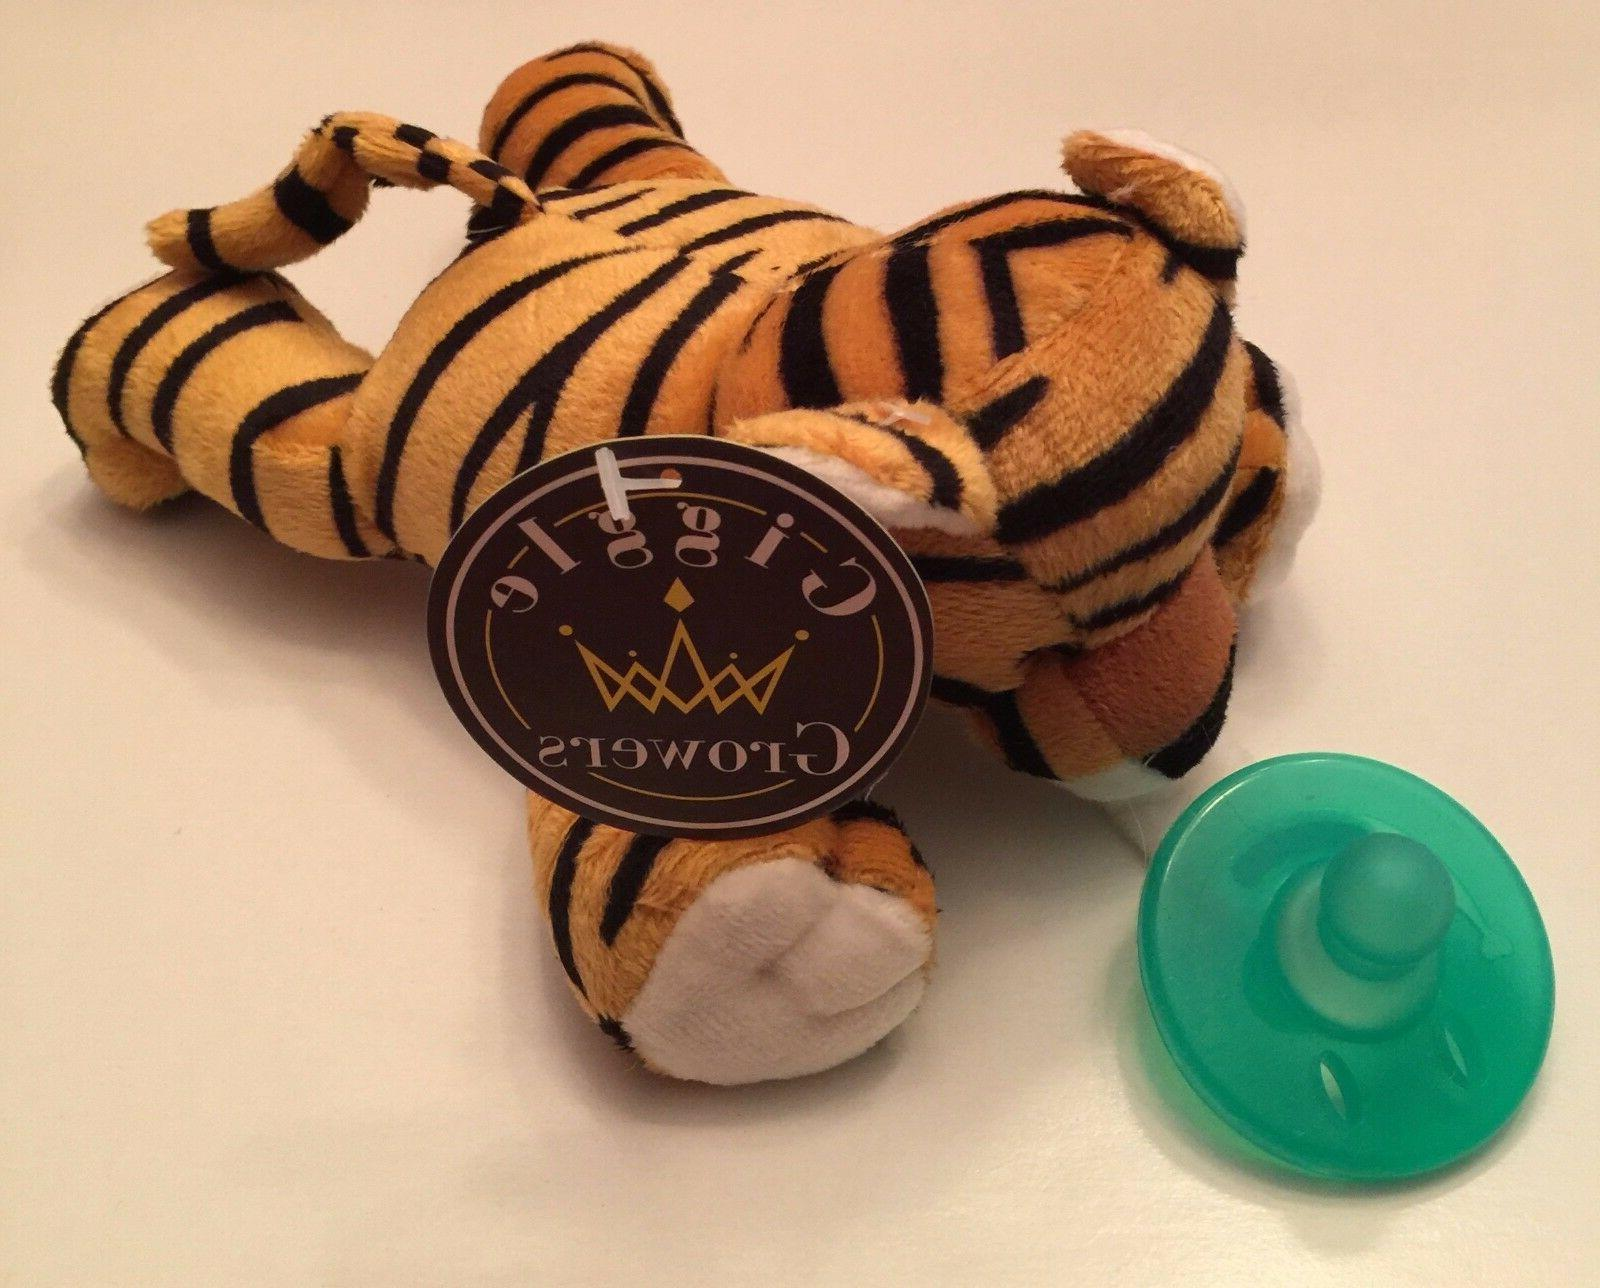 new plush toy stuffed animal tiger soothing